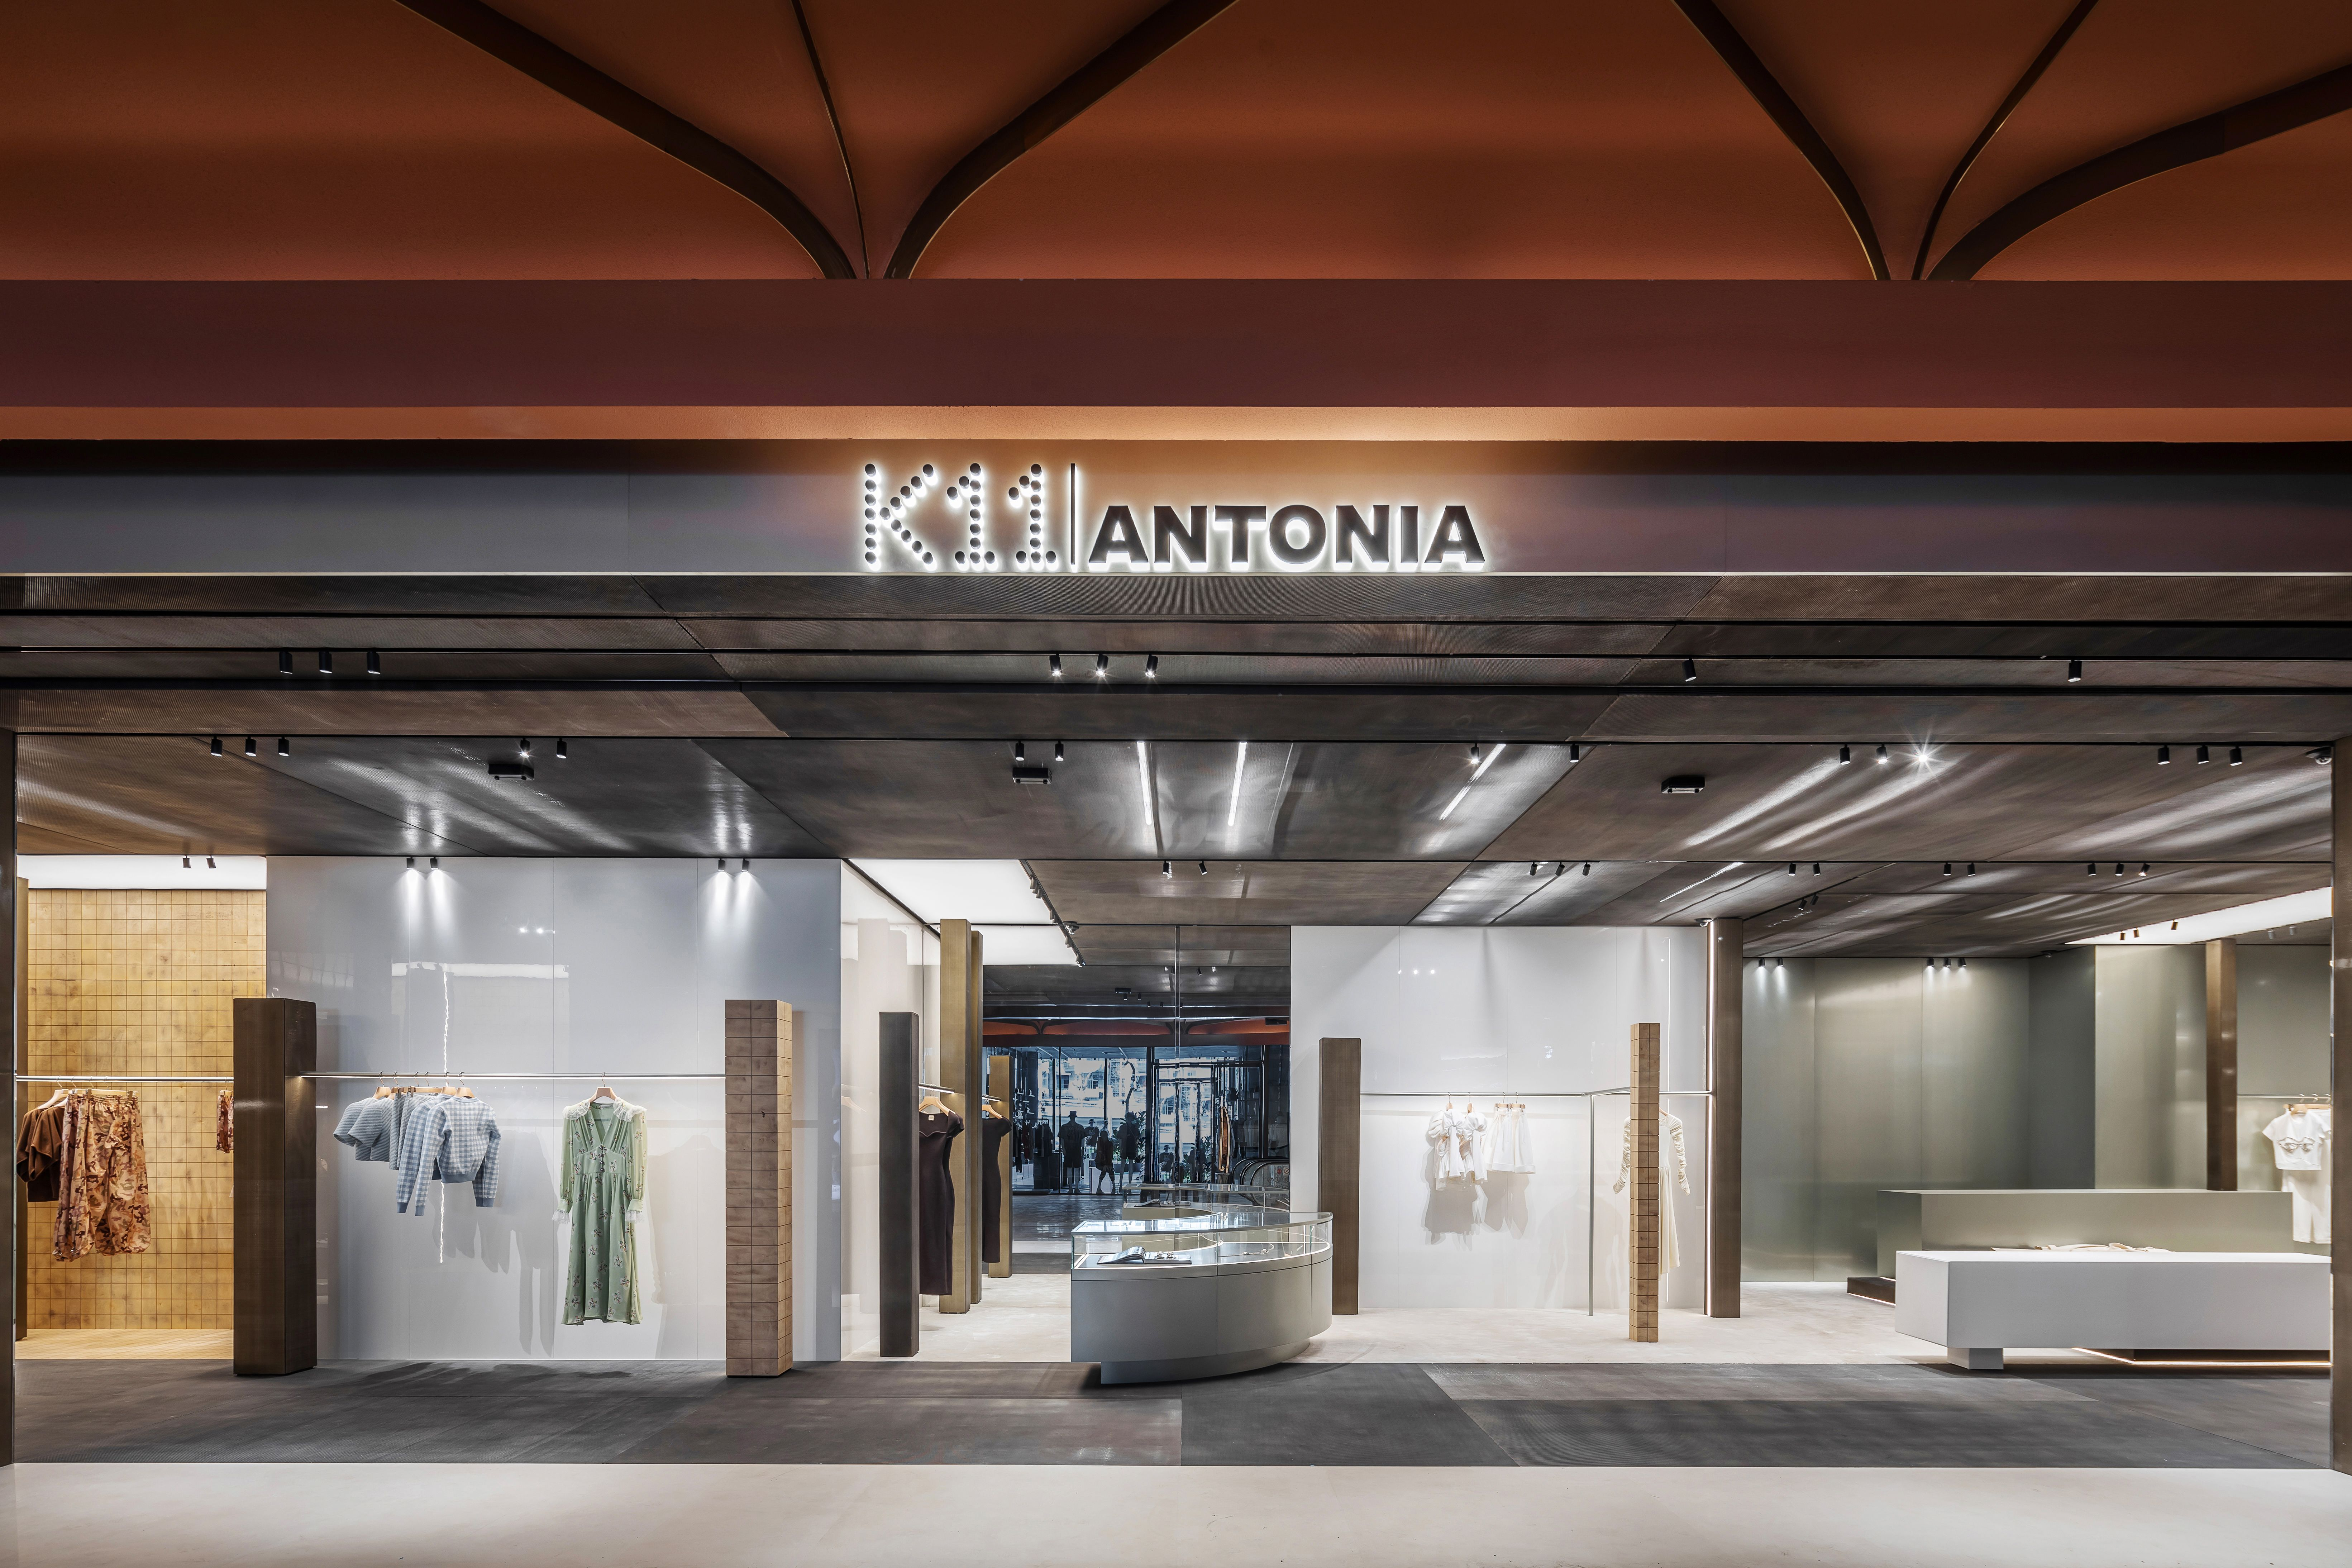 Antonia's store at the K11 Art Mall in Wuhan.